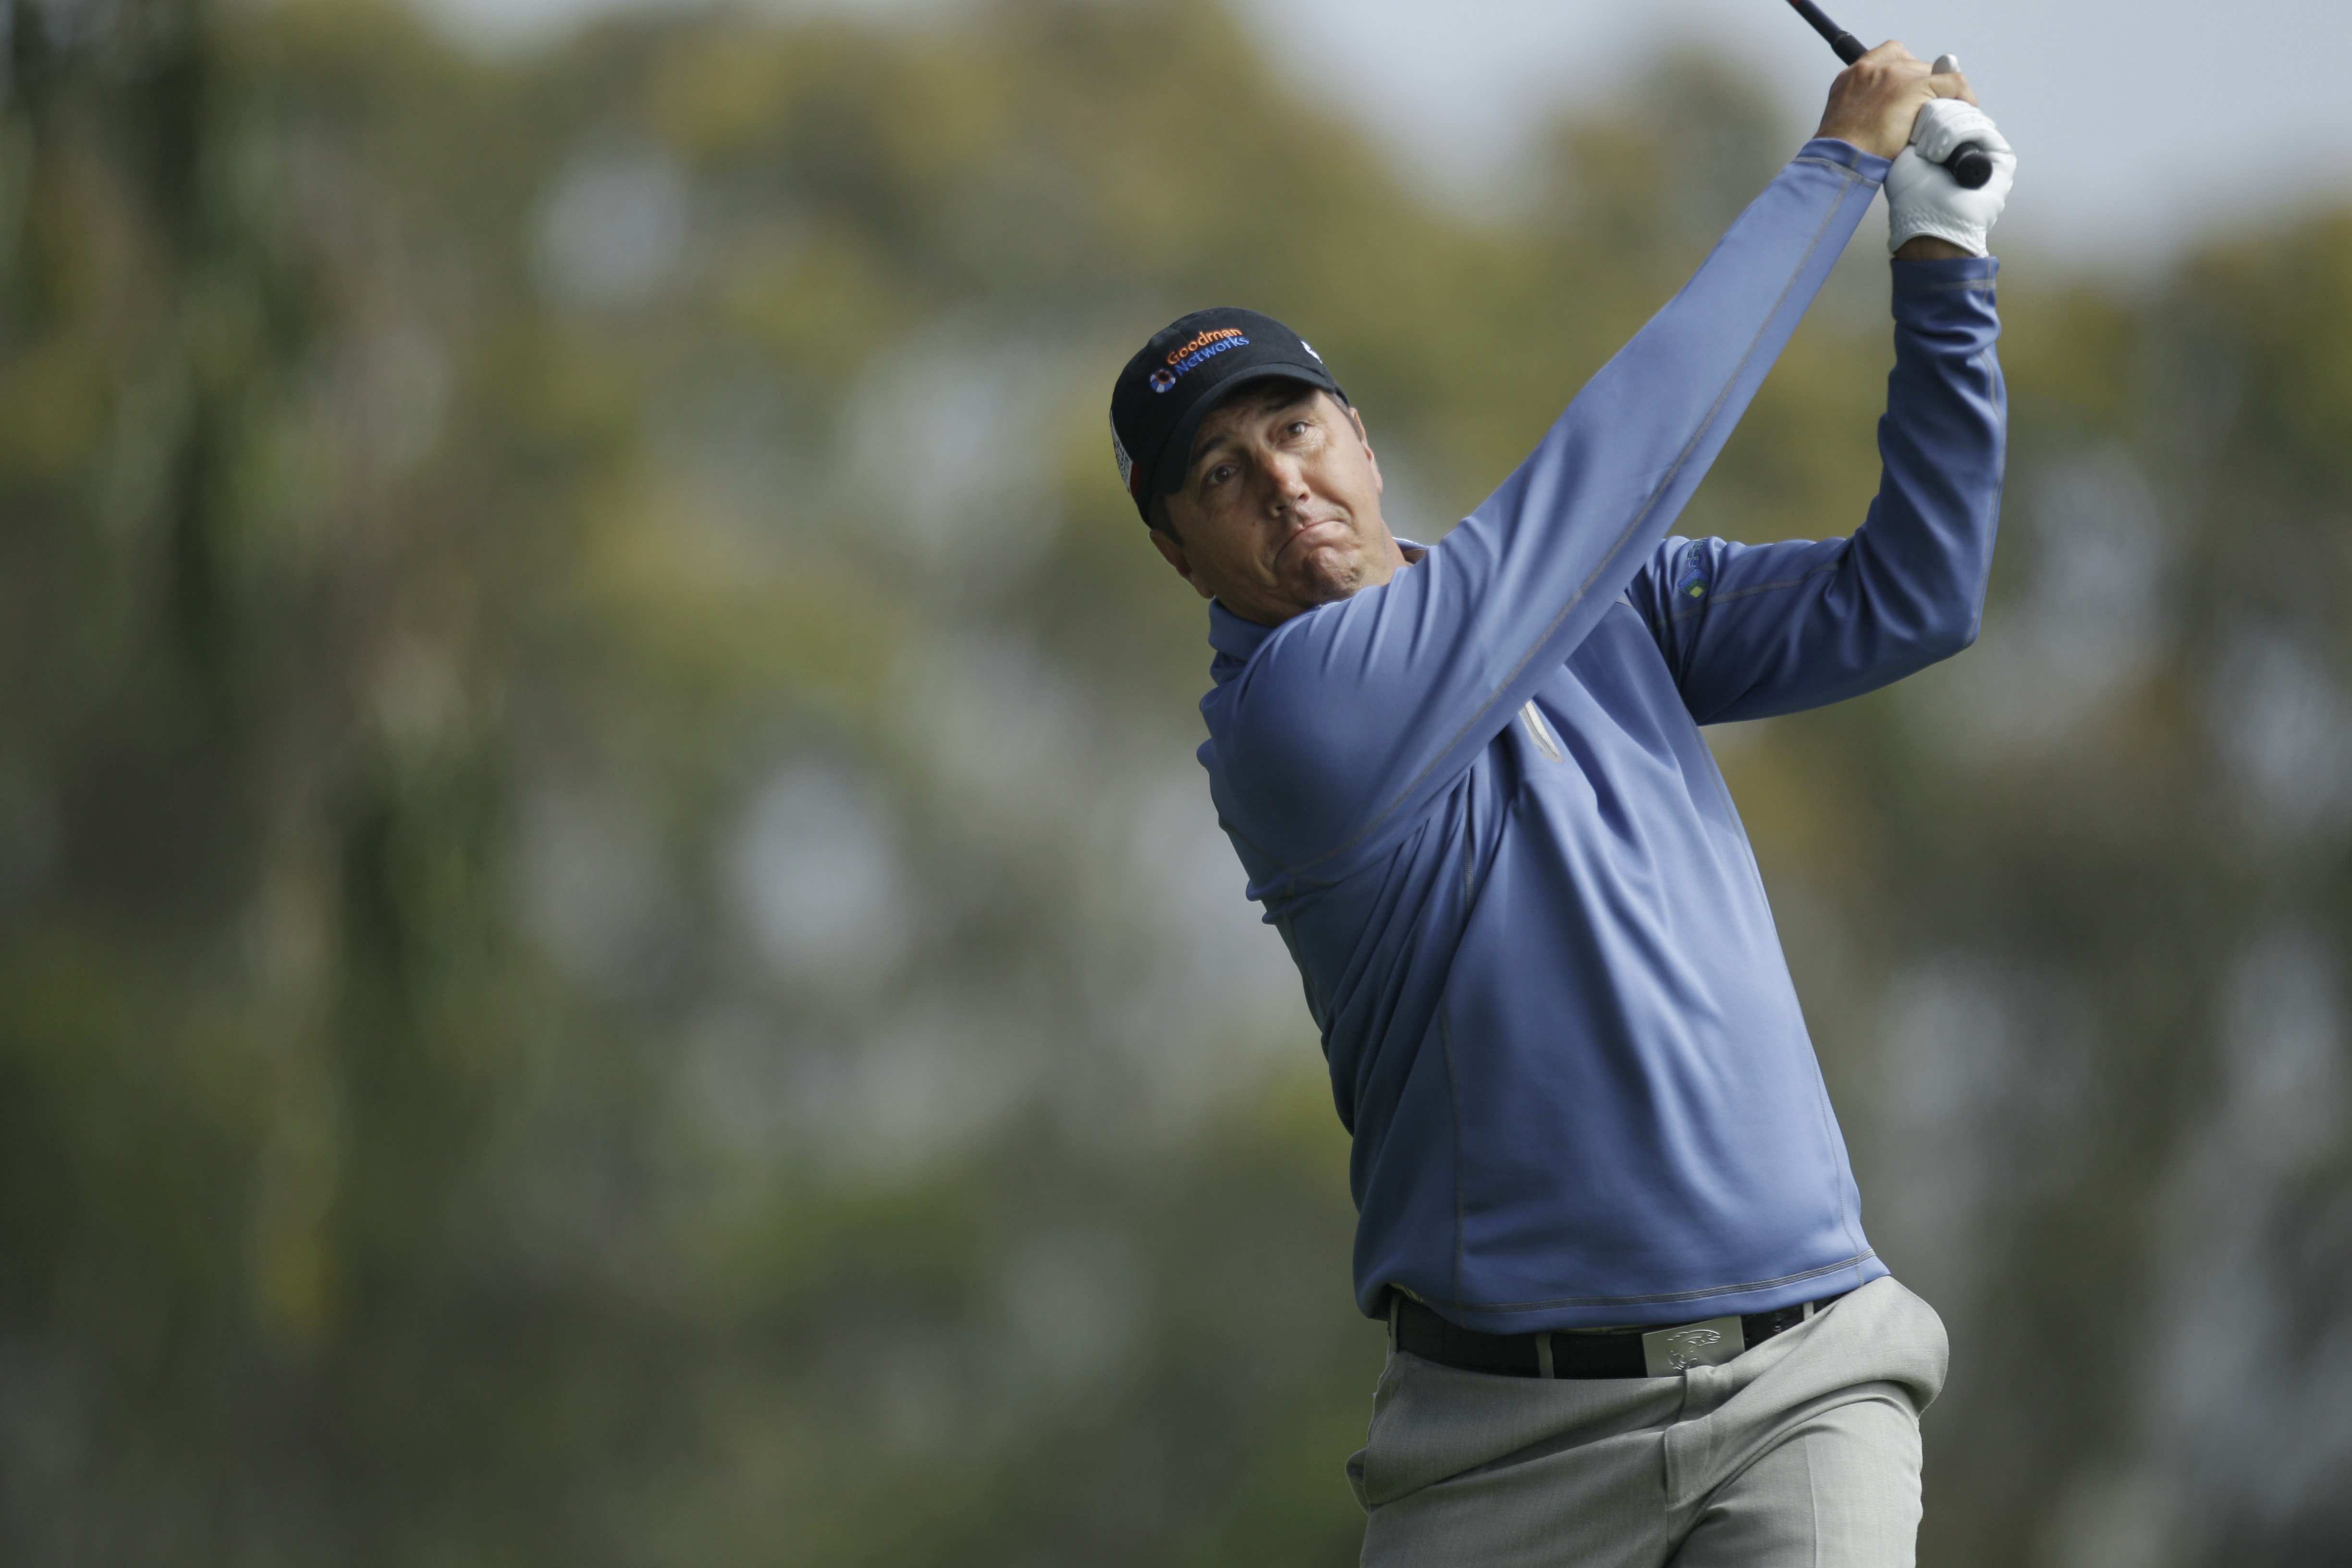 Shane Bertsch during the first round of the U.S. Open Championship golf tournament Thursday, June 14, 2012, at The Olympic Club in San Francisco. (AP Photo/Ben Margot)